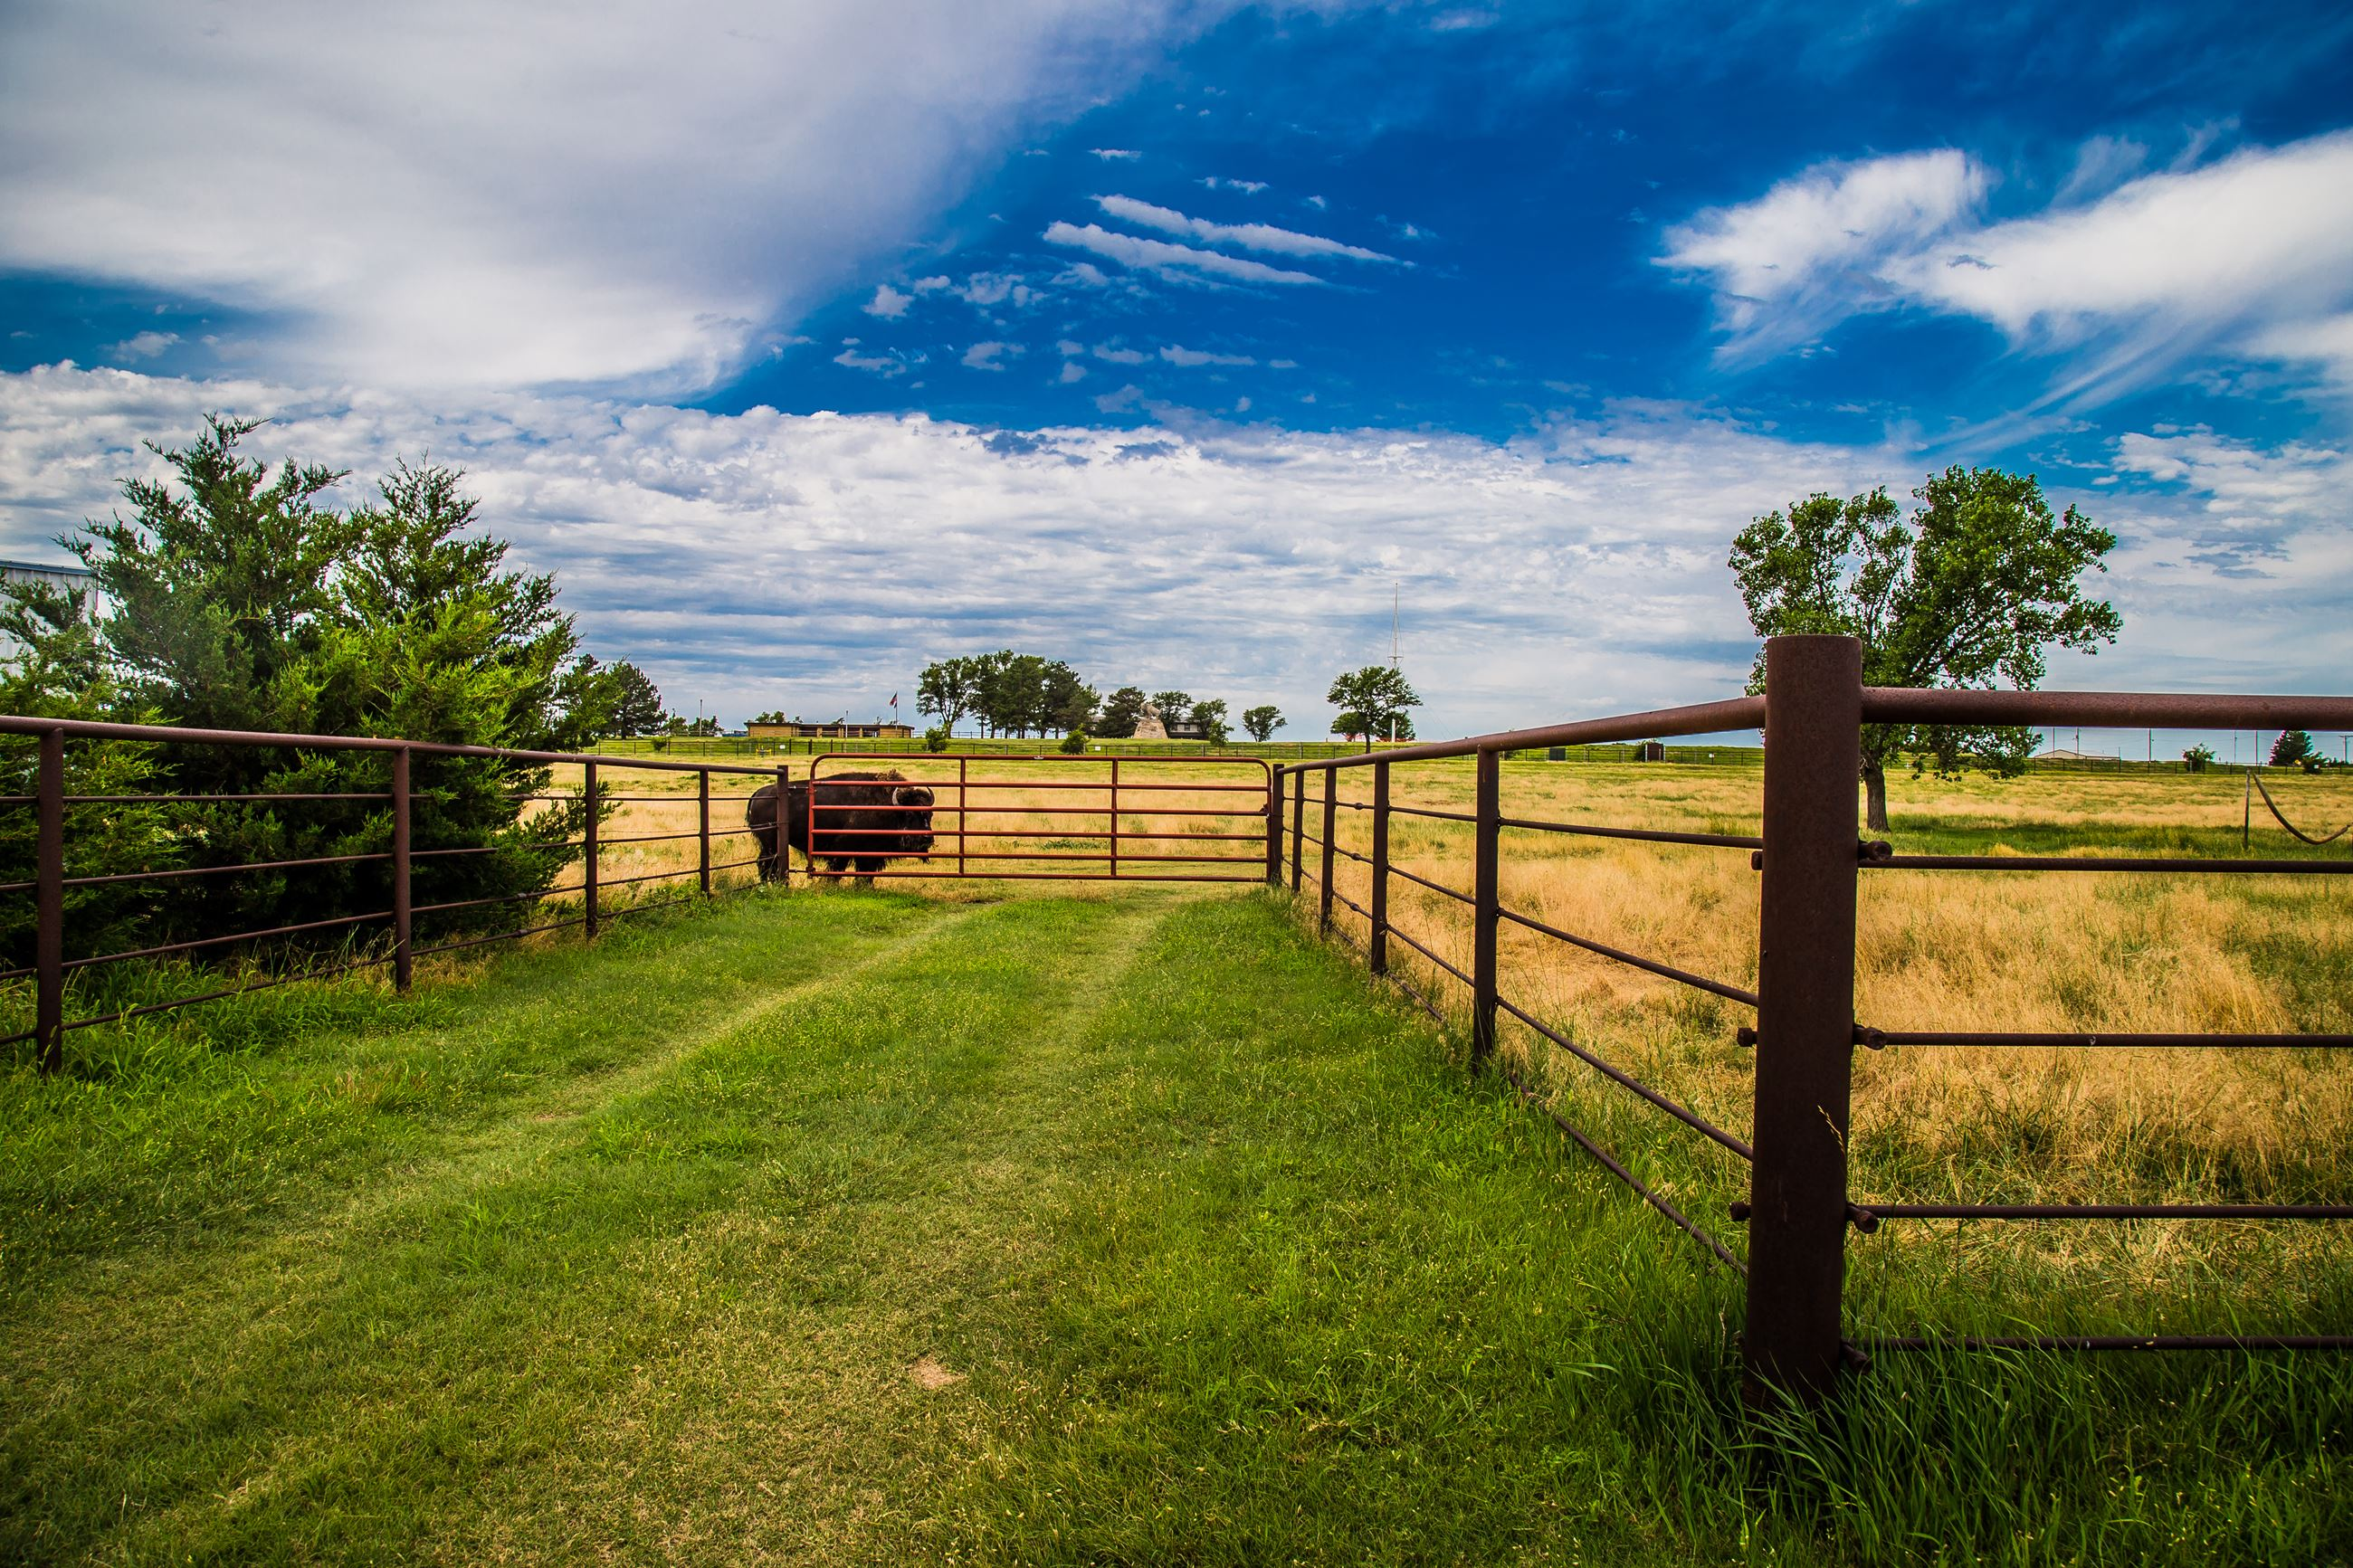 Lone Bison Grazing Alongside the Fence